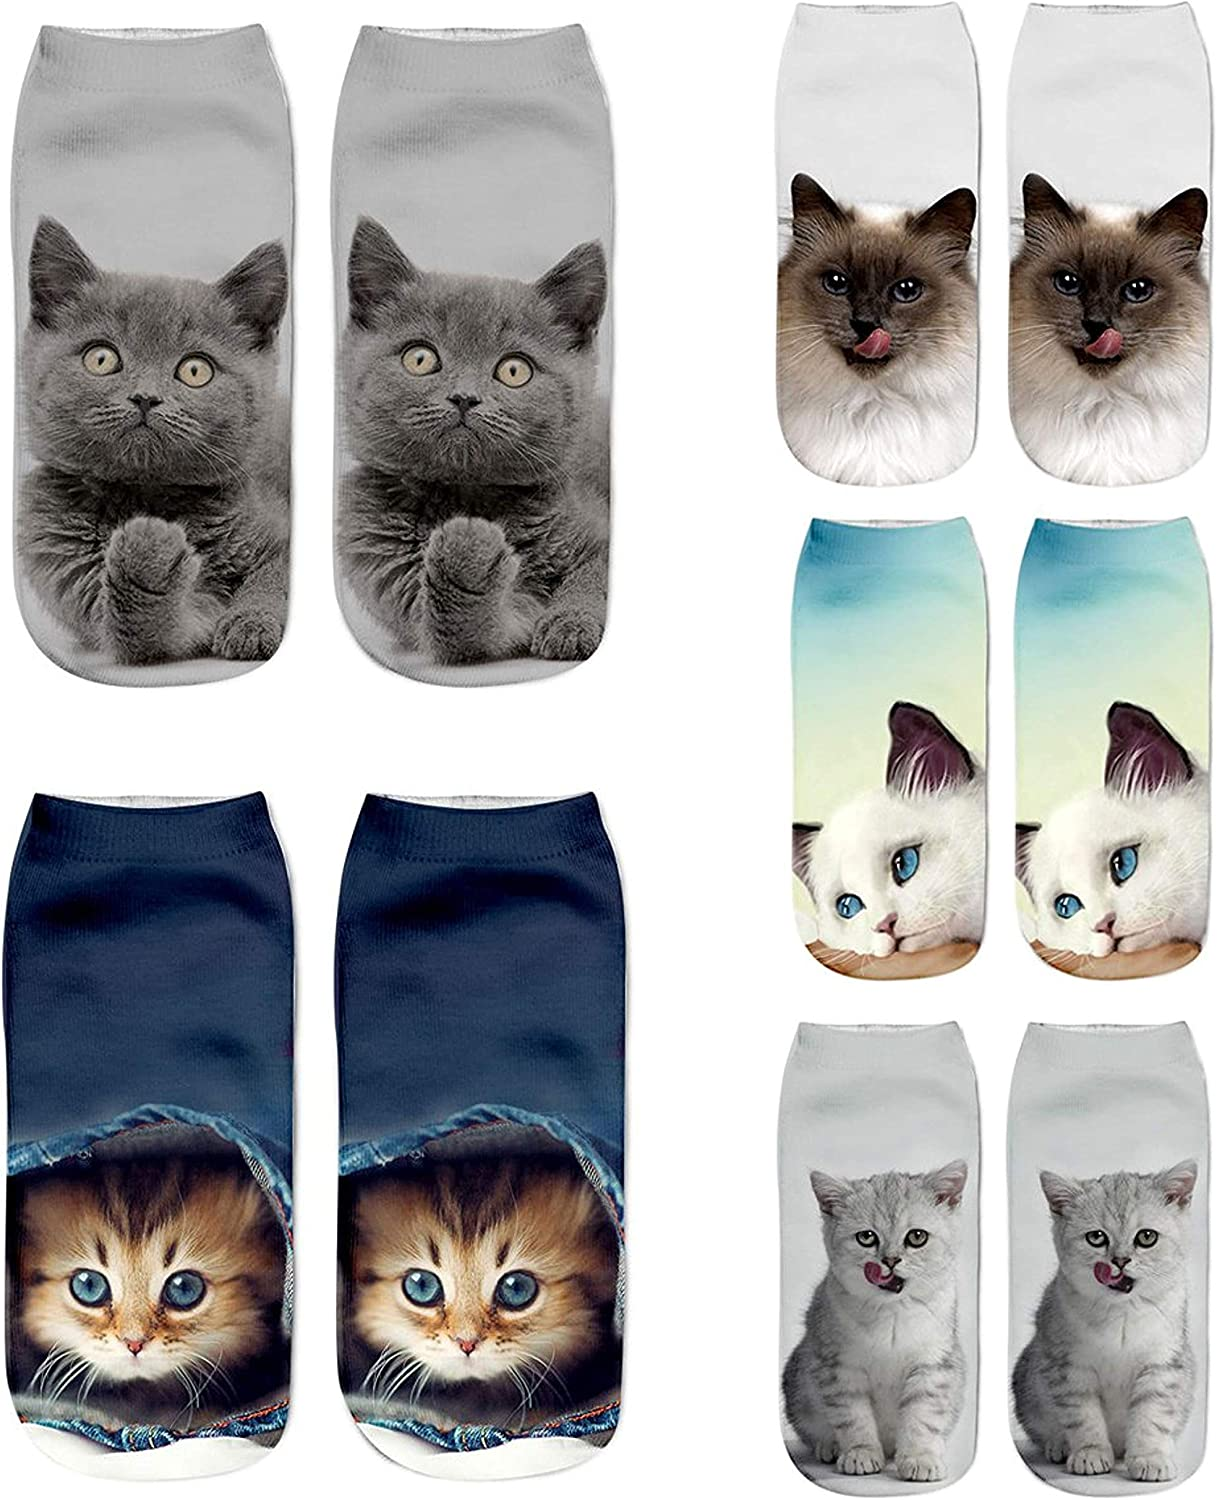 Gather Other Cute Unicorn Priting Ankle Socks Sports Stocking 3Pairs